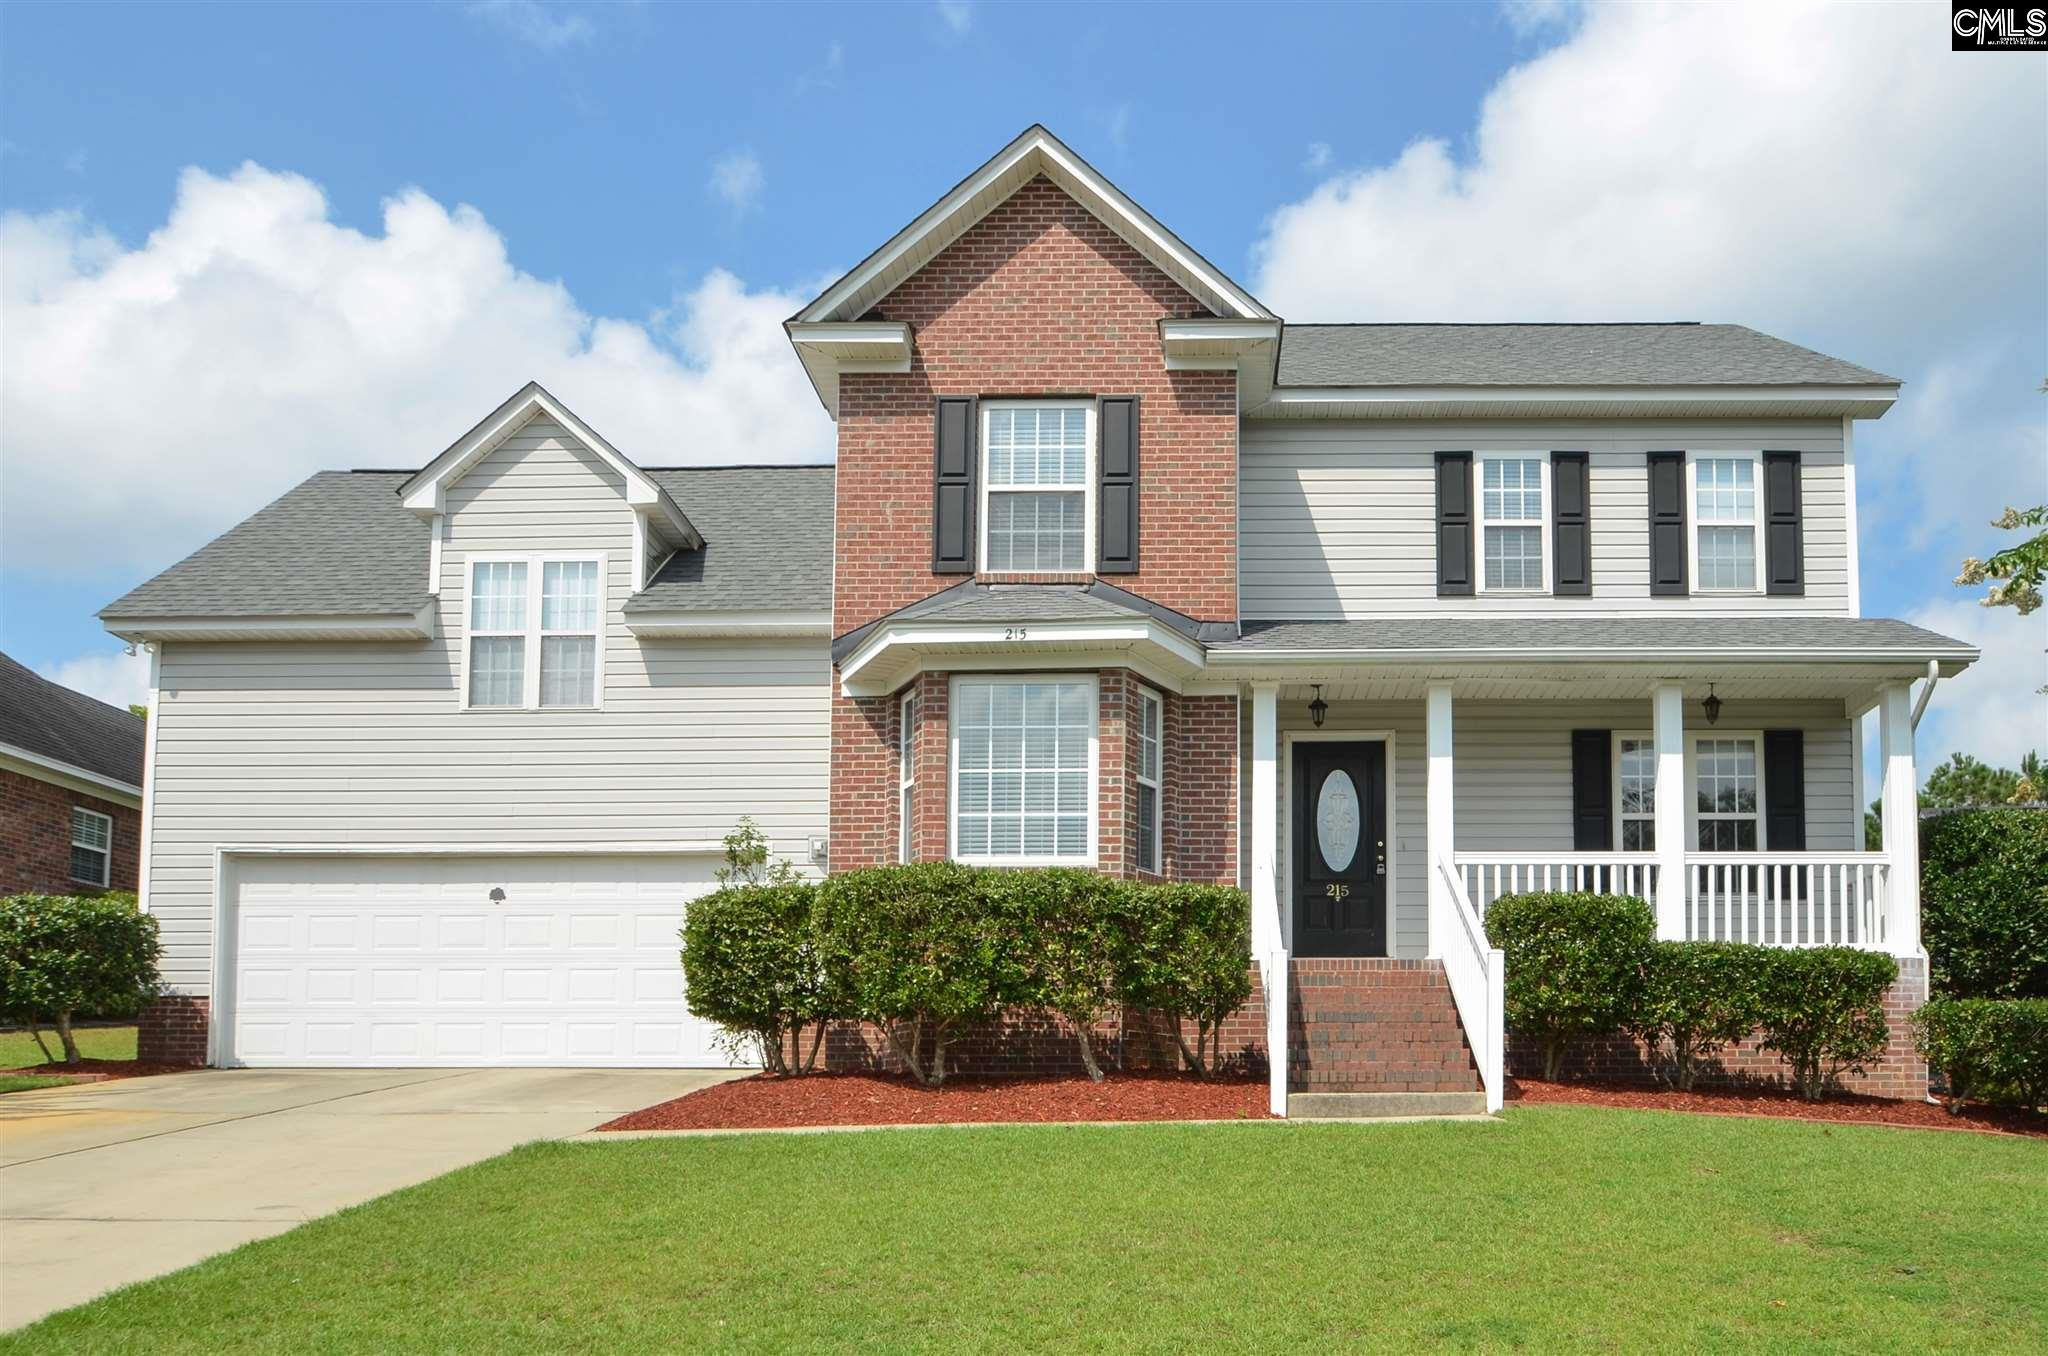 215 Plantation Pointe Elgin, SC 29045